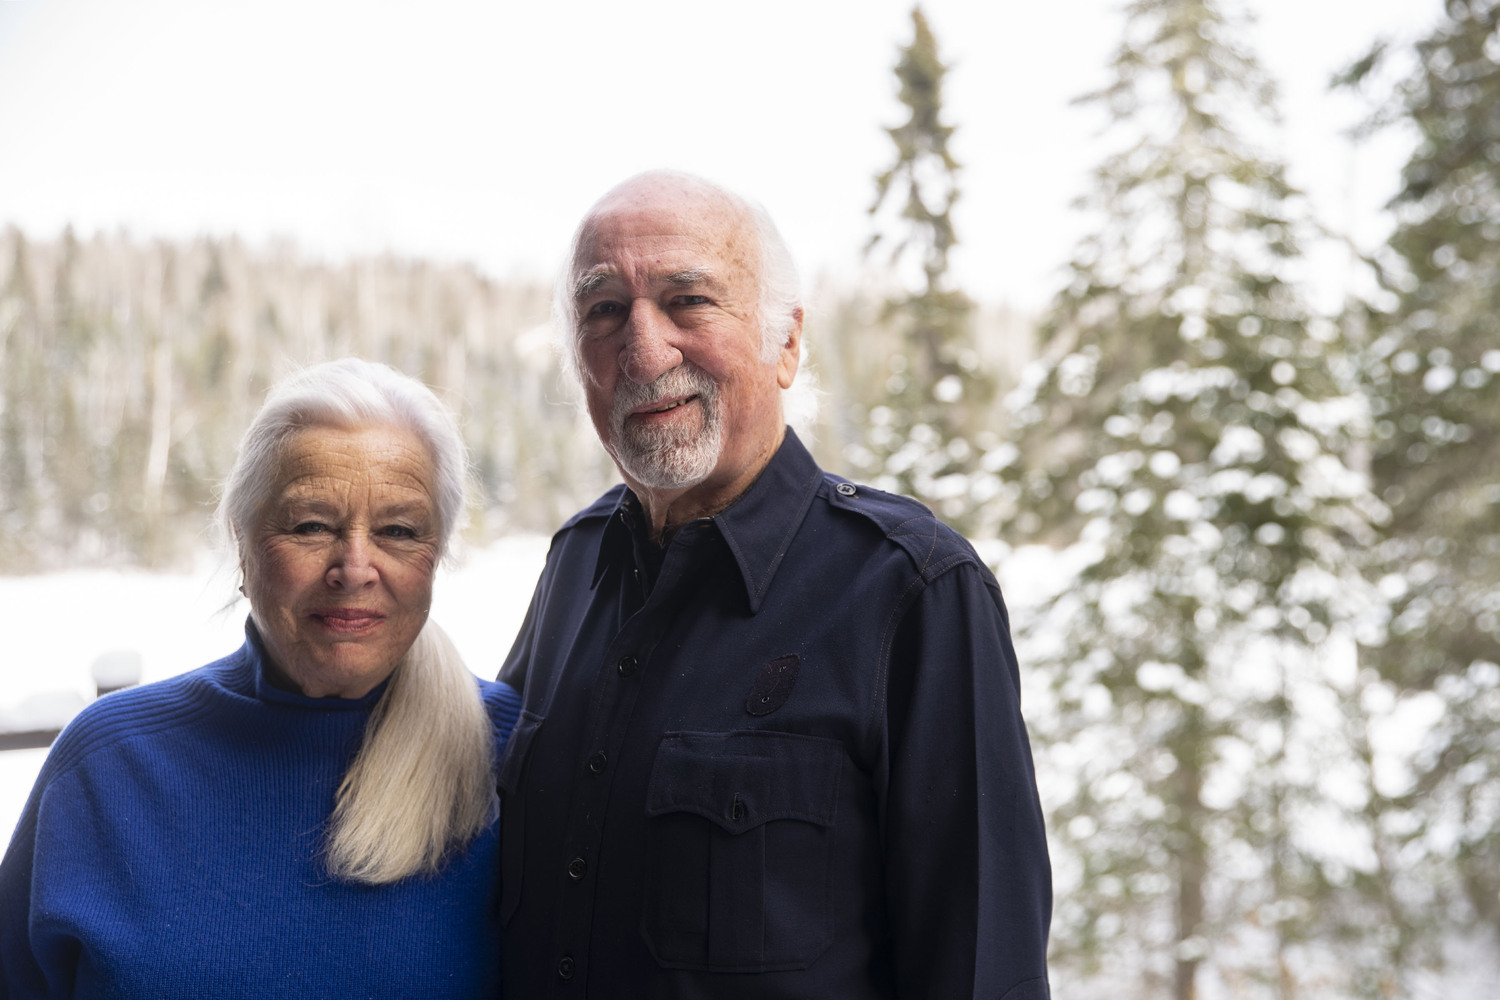 Leddy and her husband, Tom, have had a cabin on Birch Lake since 1976 -- a place they regularly visit. Joyce's uncle built the first cabin on Birch Lake.